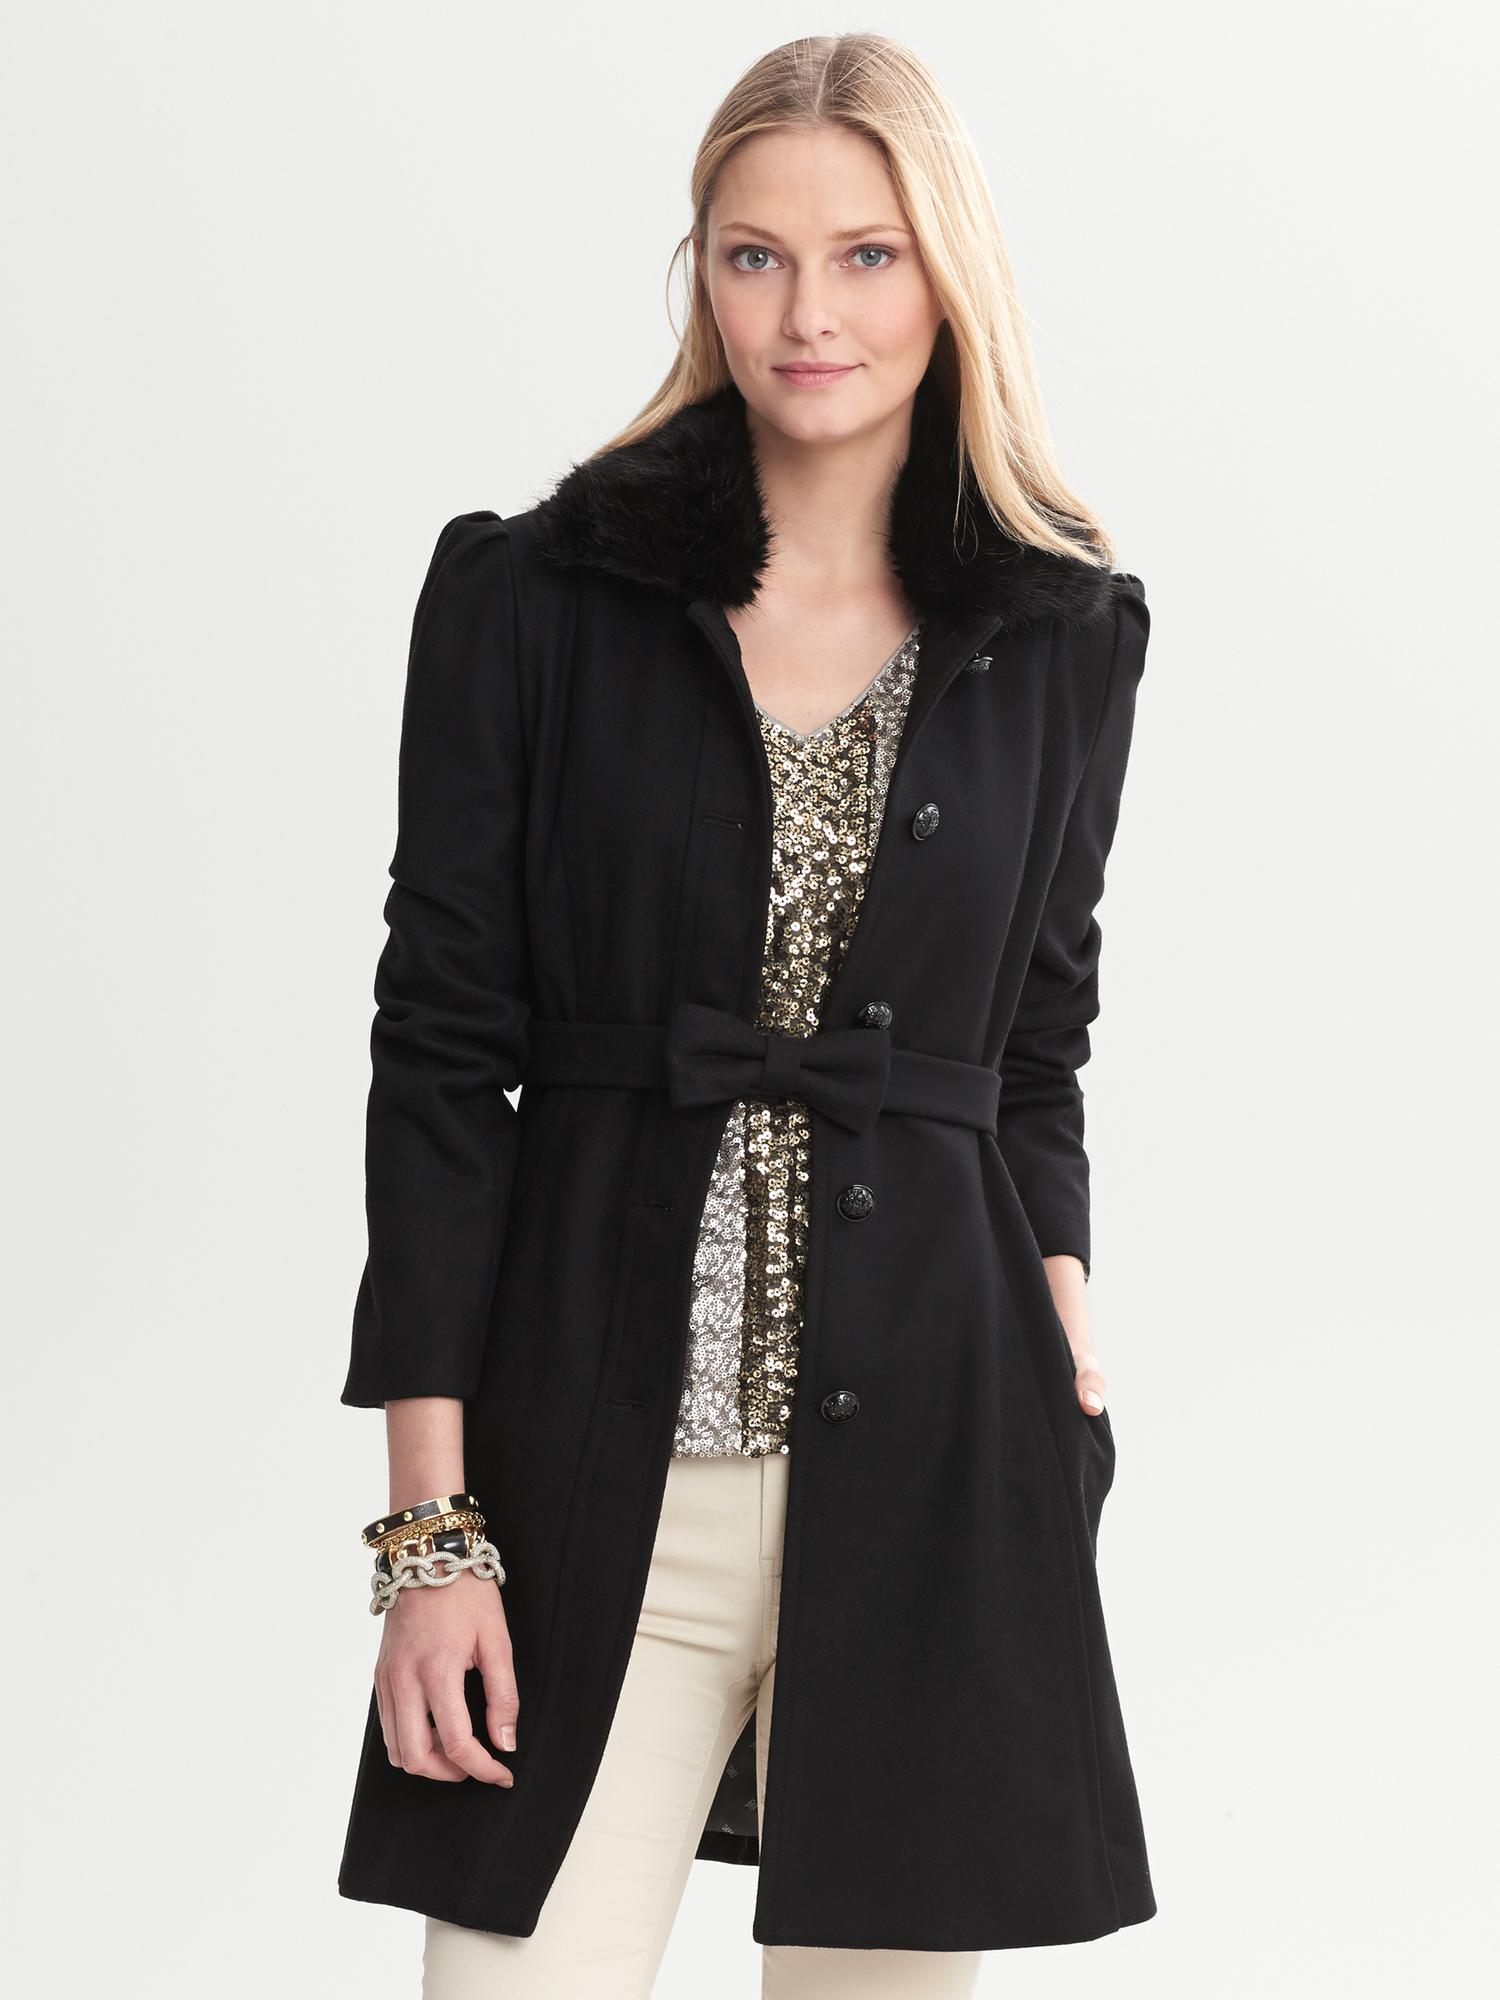 Shop Banana Republic Women's Jackets & Coats at up to 70% off! Get the lowest price on your favorite brands at Poshmark. Poshmark makes shopping fun, affordable & easy!